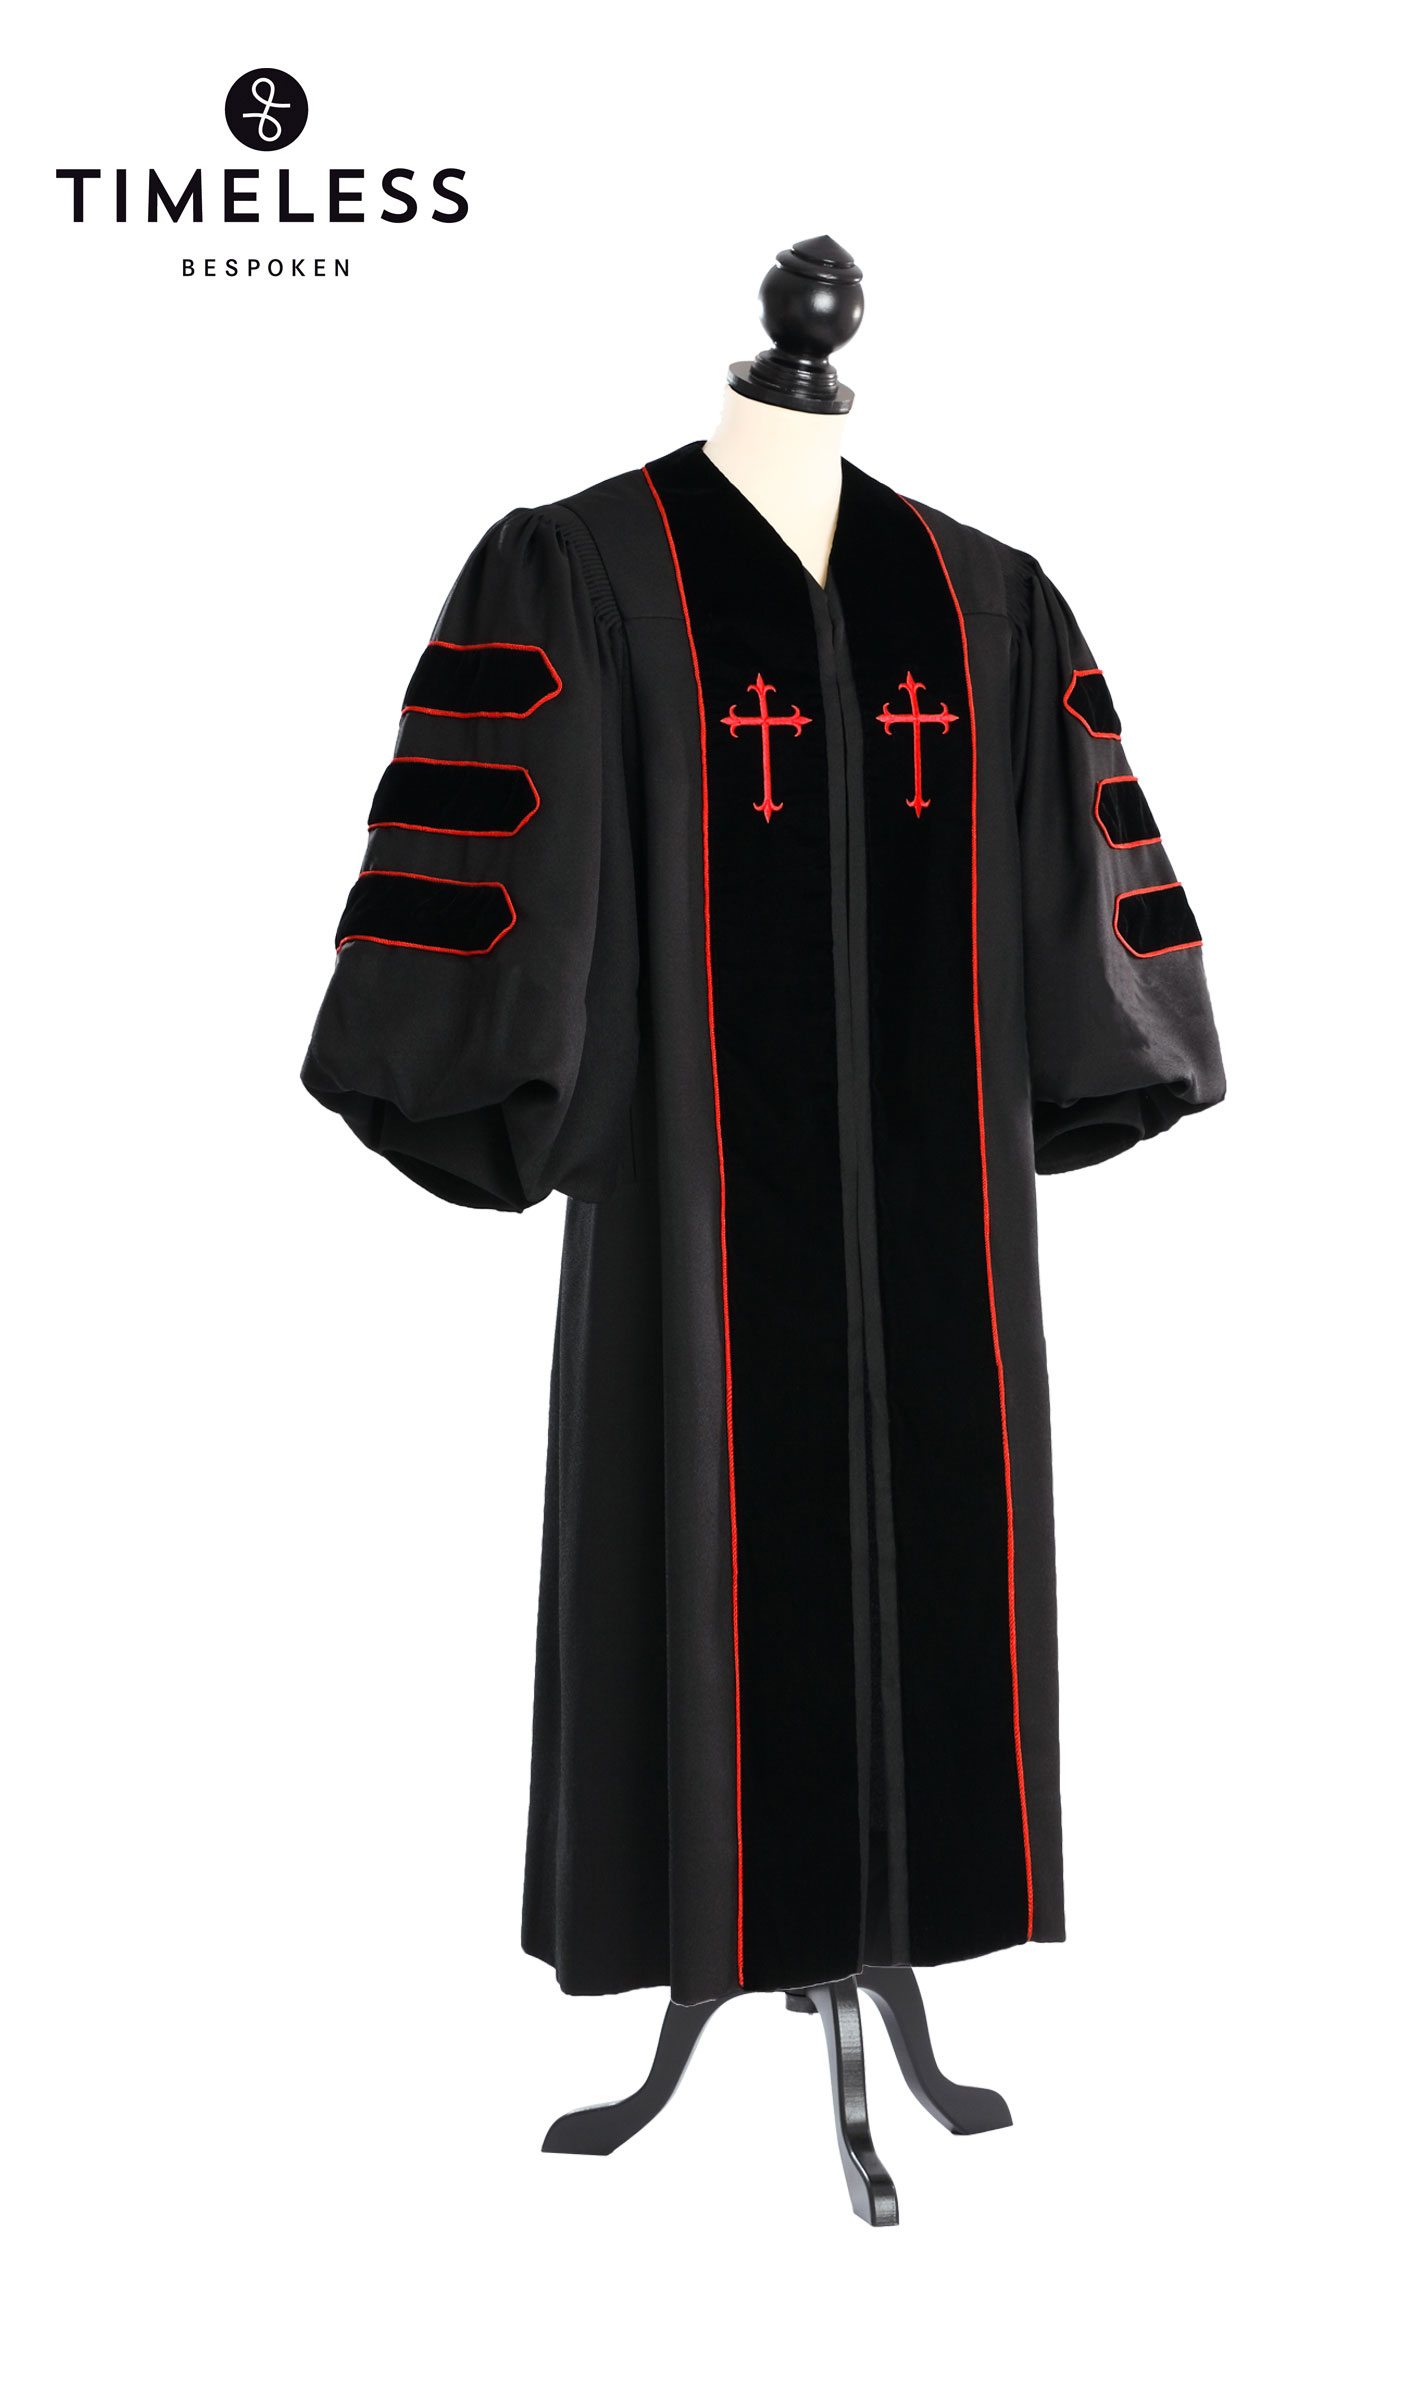 Dr. of Divinity Clergy Talar, TIMELESS gold silk